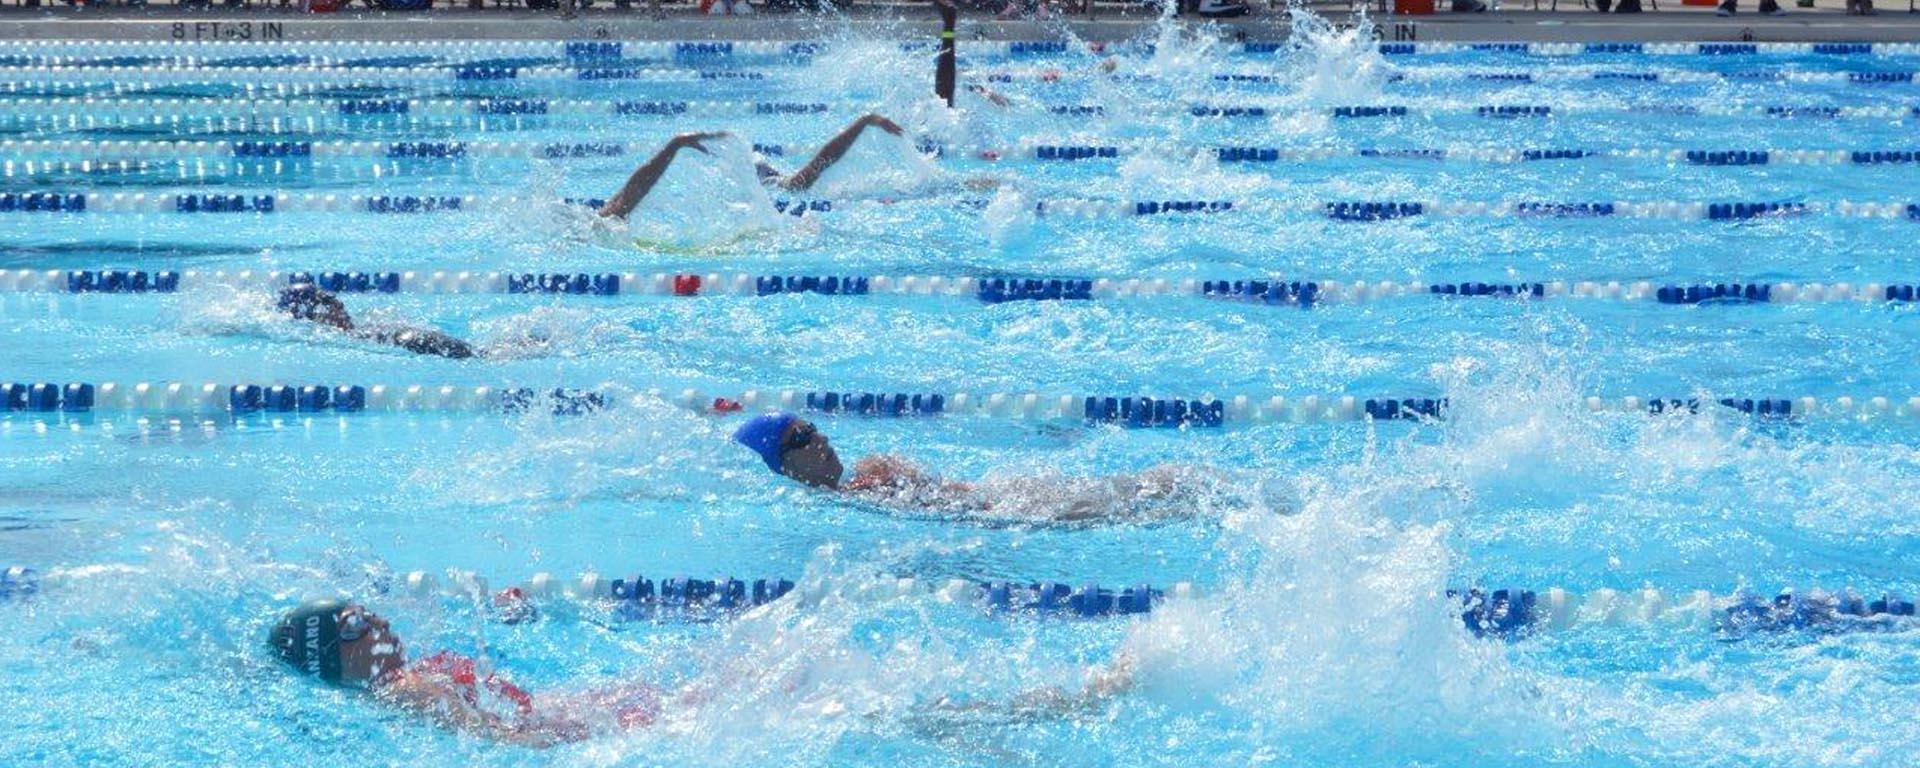 Swimmers at the Aquatic Center